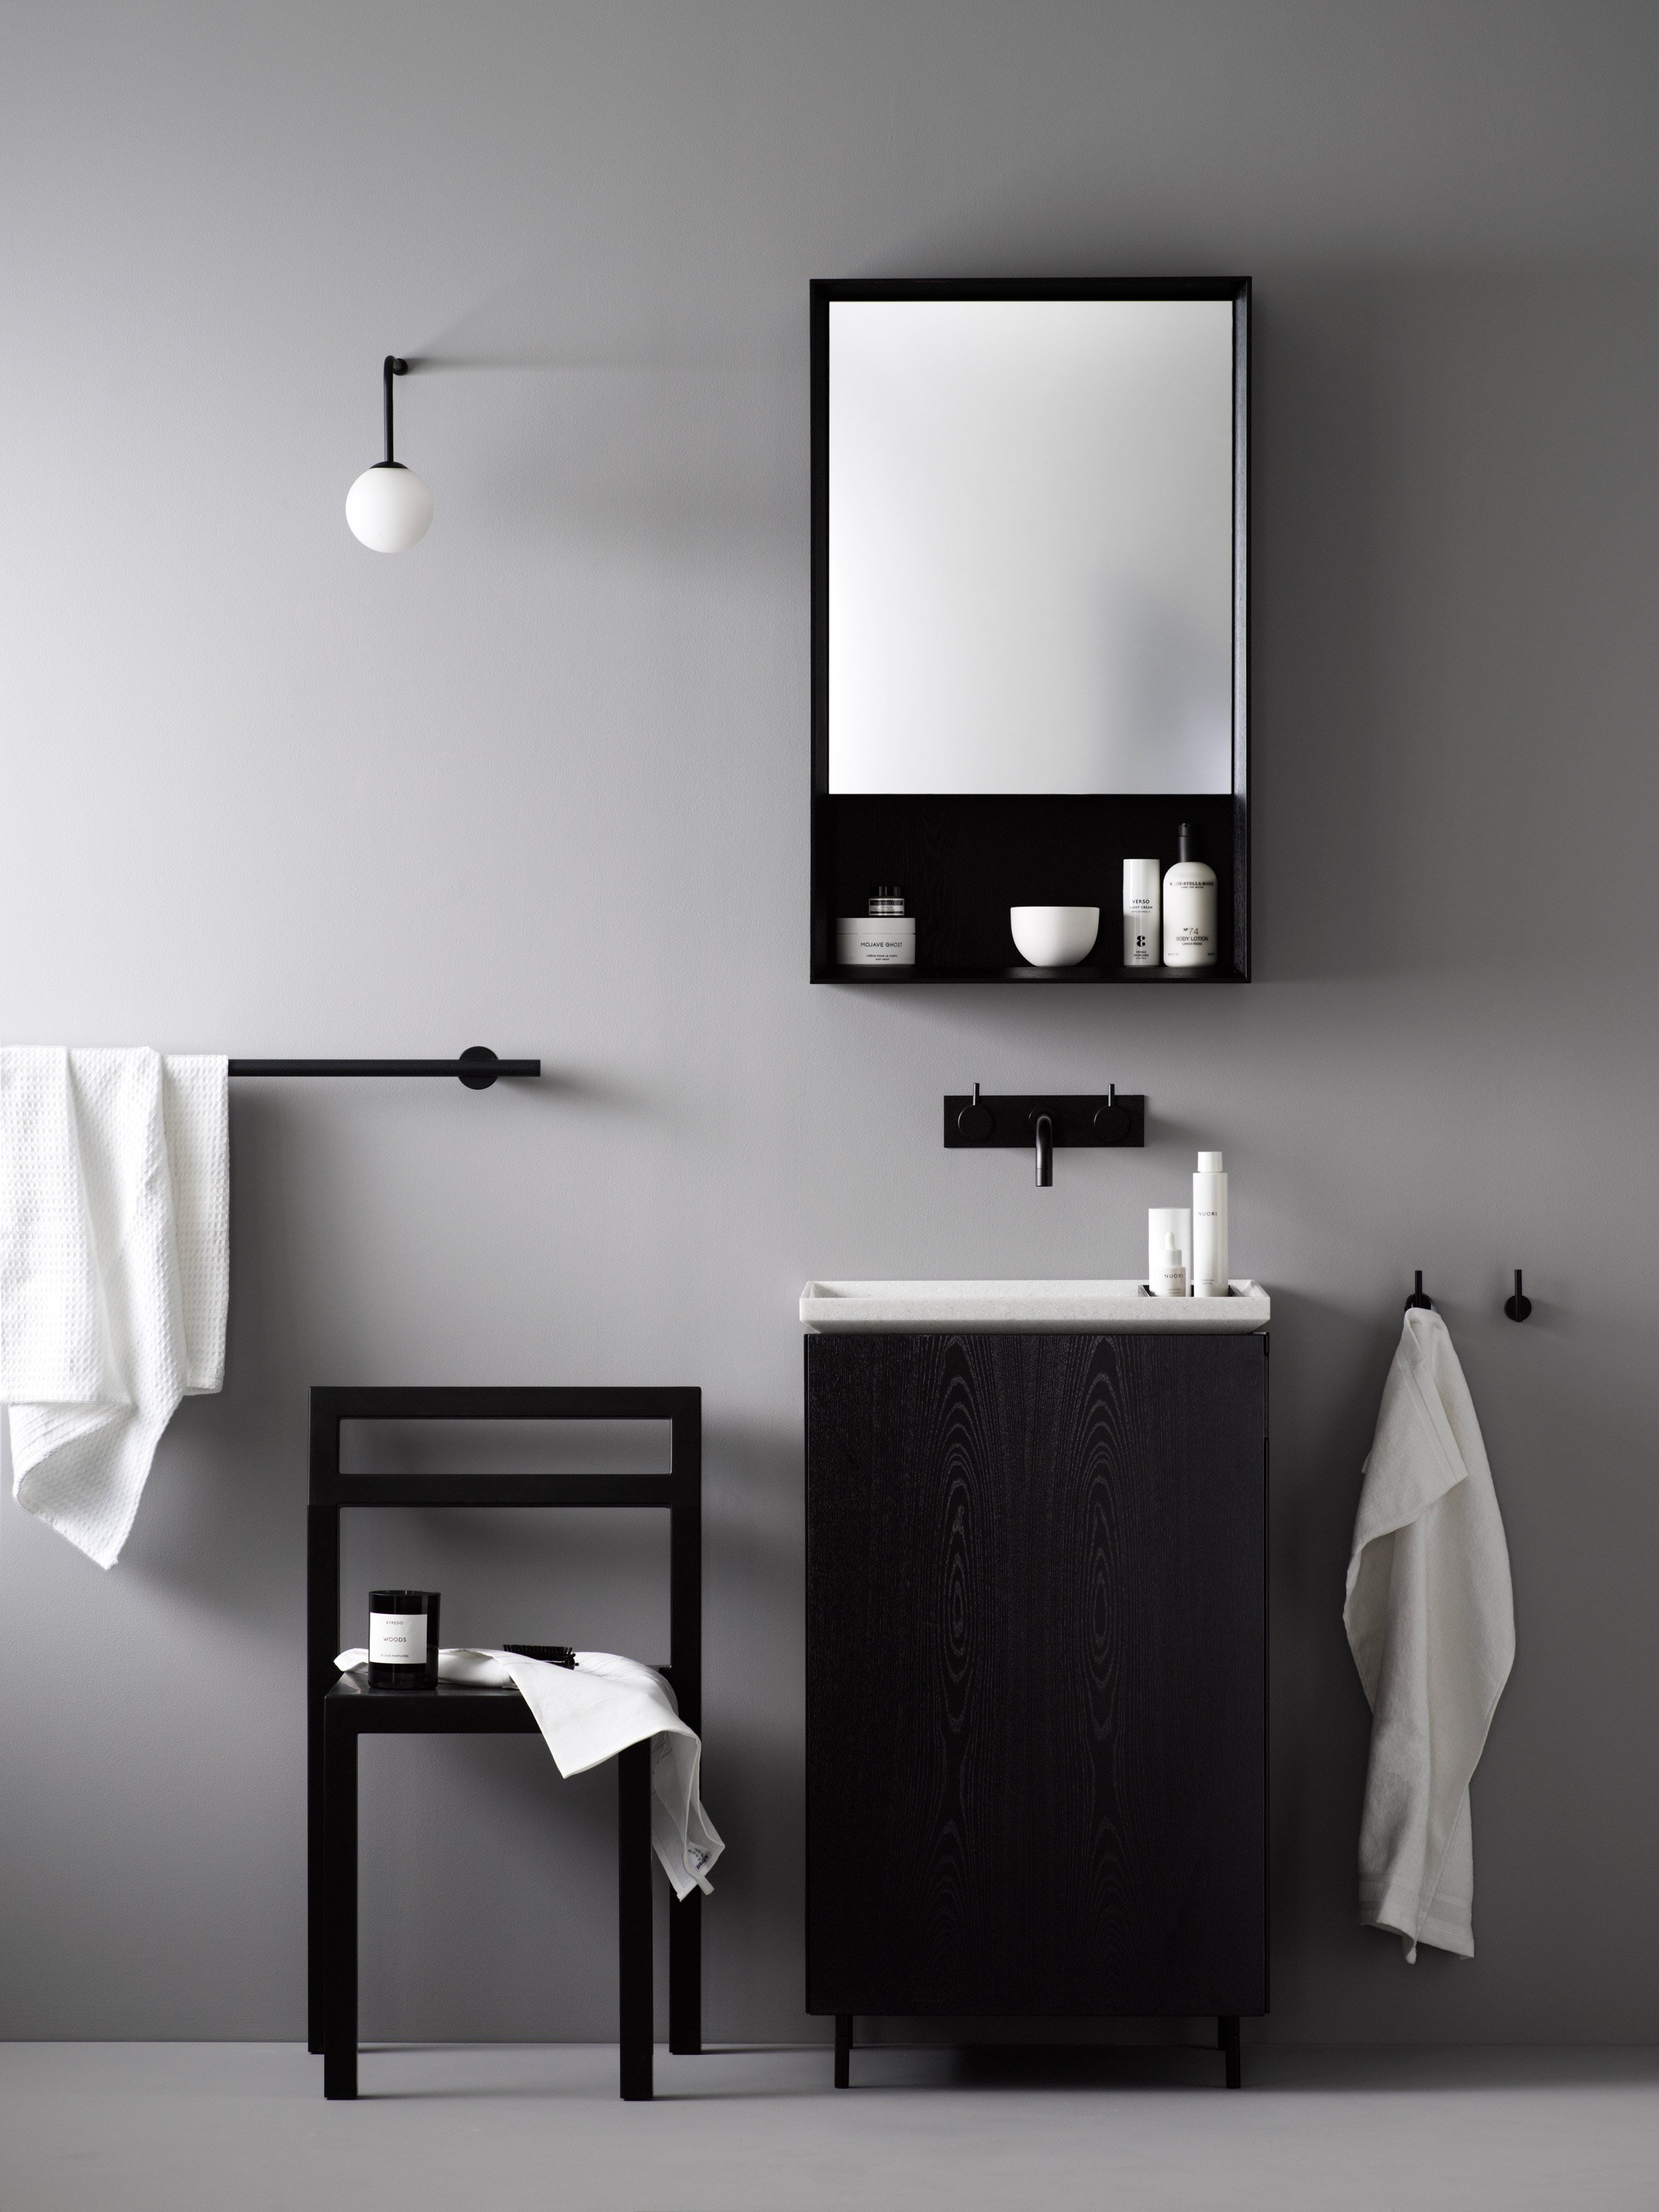 Norm Architects creates bathroom collection for small-space living